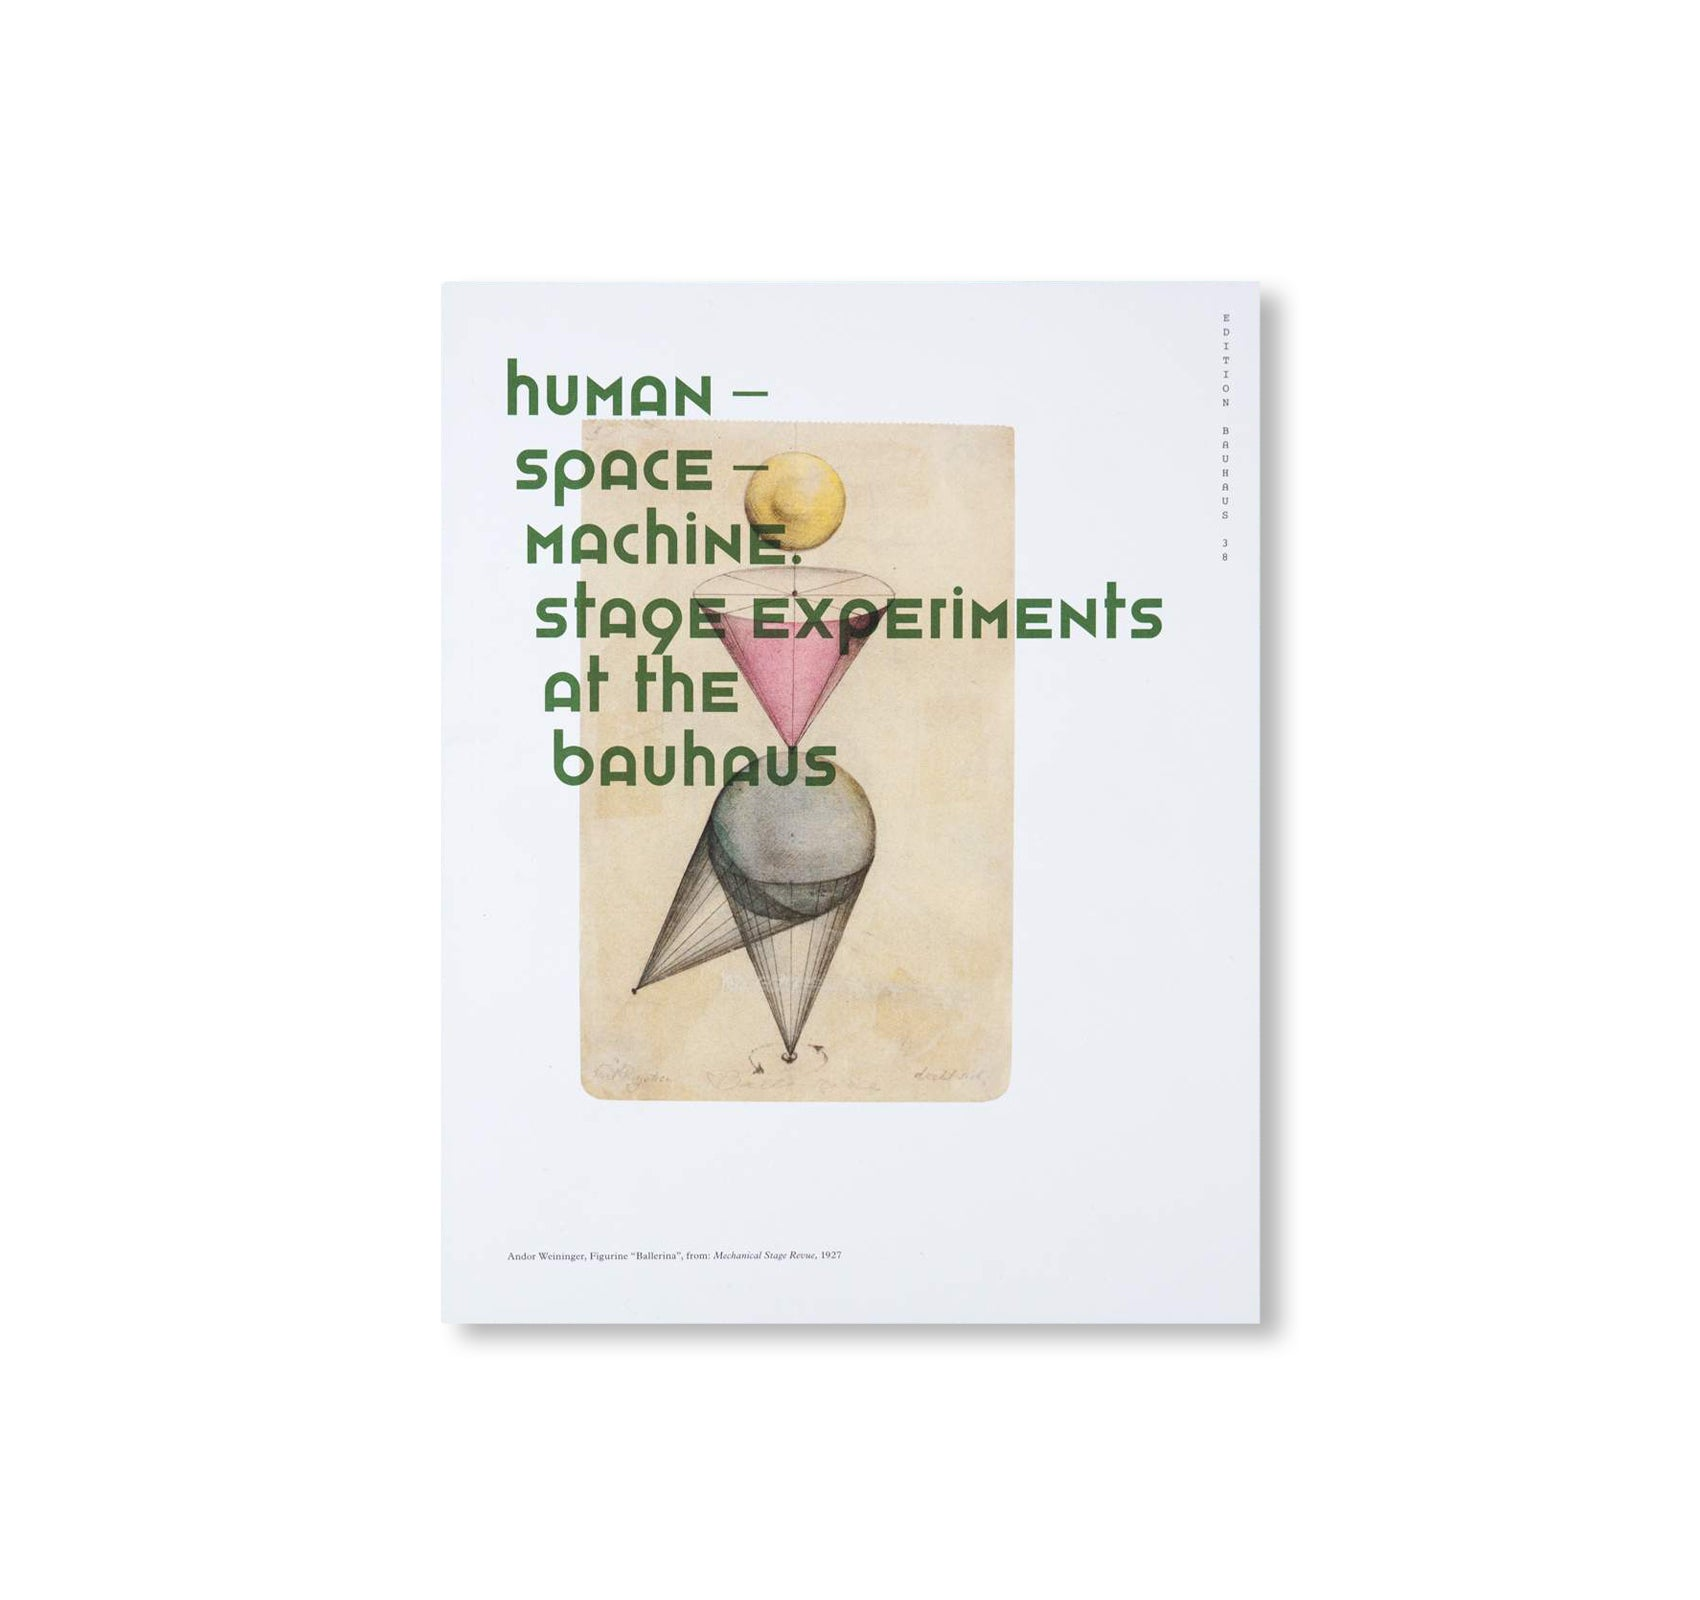 HUMAN - SPACE - MACHINE - Stage experiments at the Bauhaus / Edition Bauhaus 38 by Stiftung Bauhaus Dessau